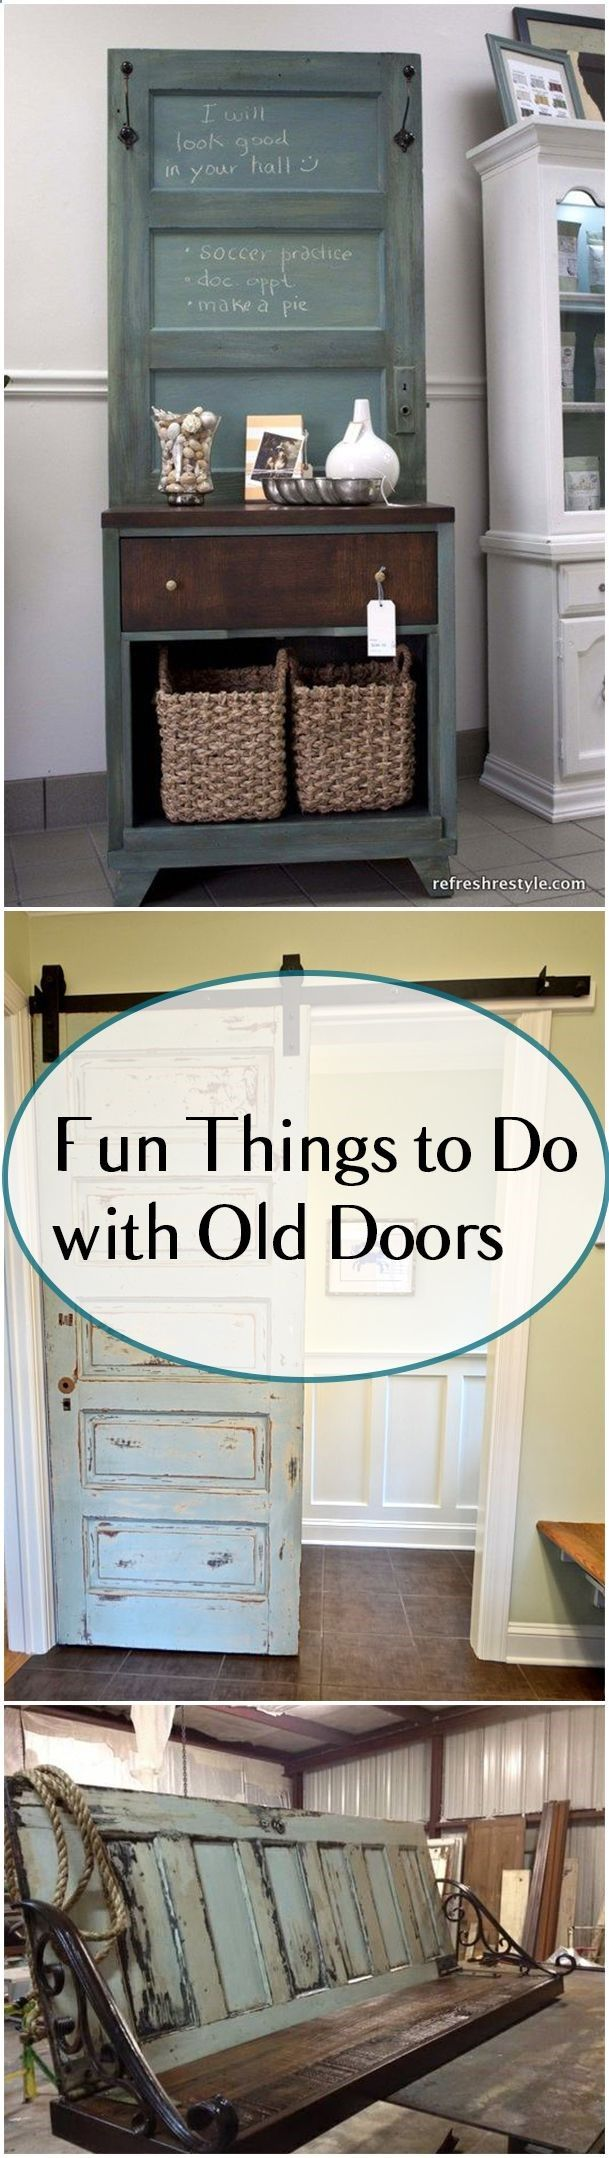 Fun Projects you can make with old doors. Amazing upcycled door projects.